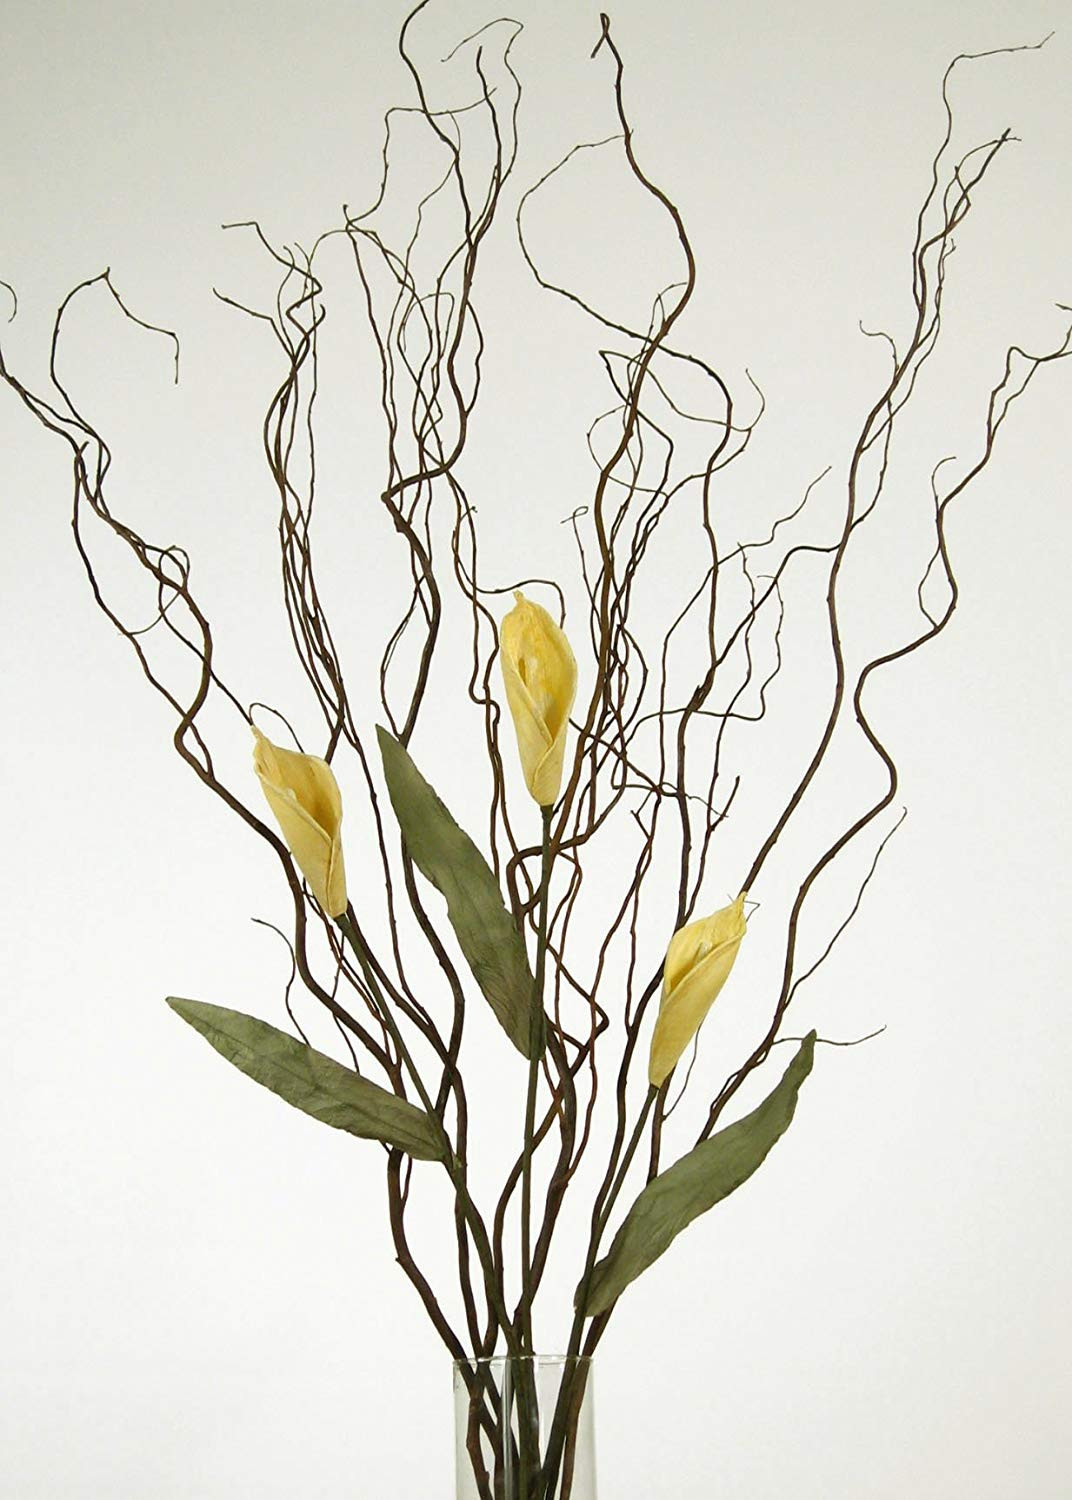 calla lily tall vase of amazon com greenfloralcrafts curly willow and yellow calla lilies pertaining to amazon com greenfloralcrafts curly willow and yellow calla lilies vase not included home kitchen